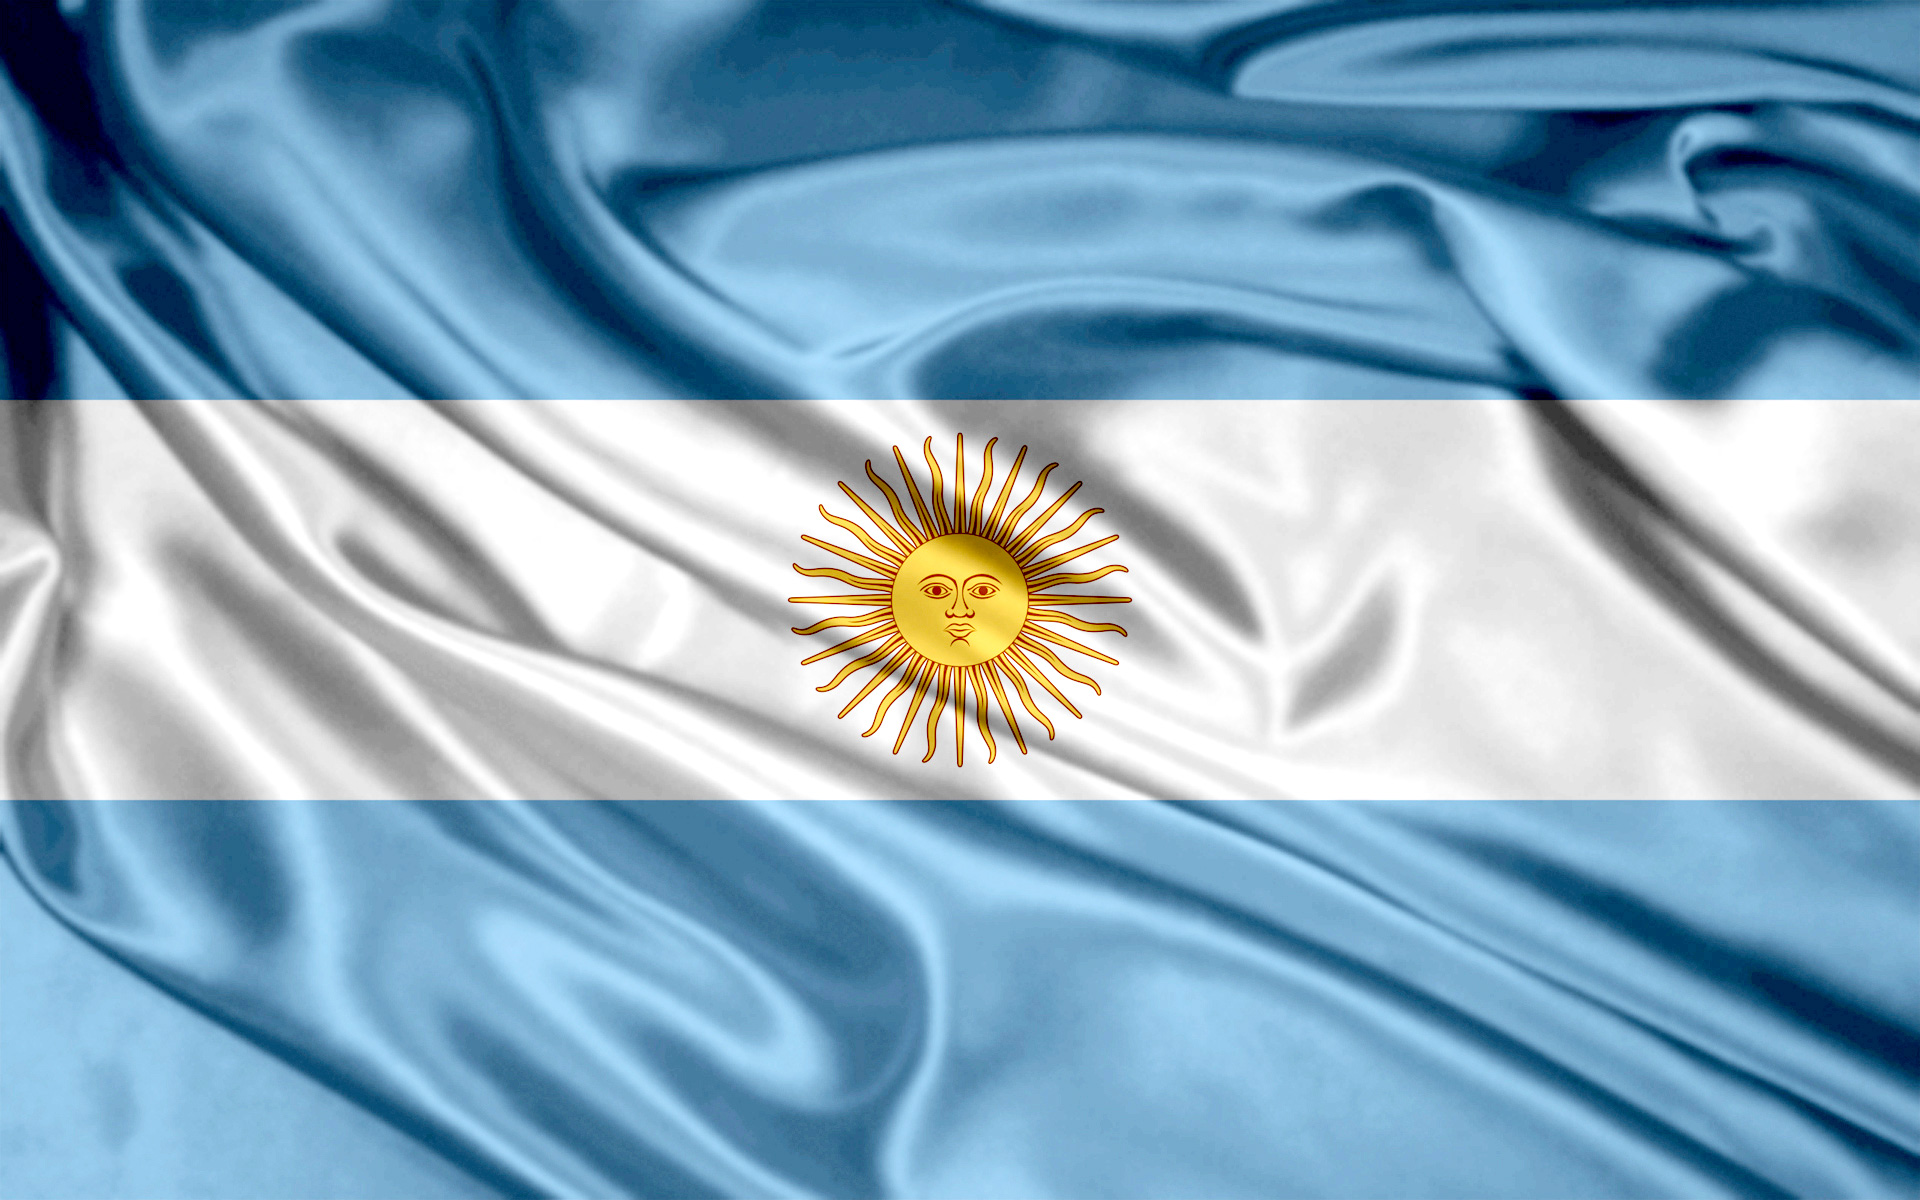 Argentina Silk Flag 1742.57 Kb